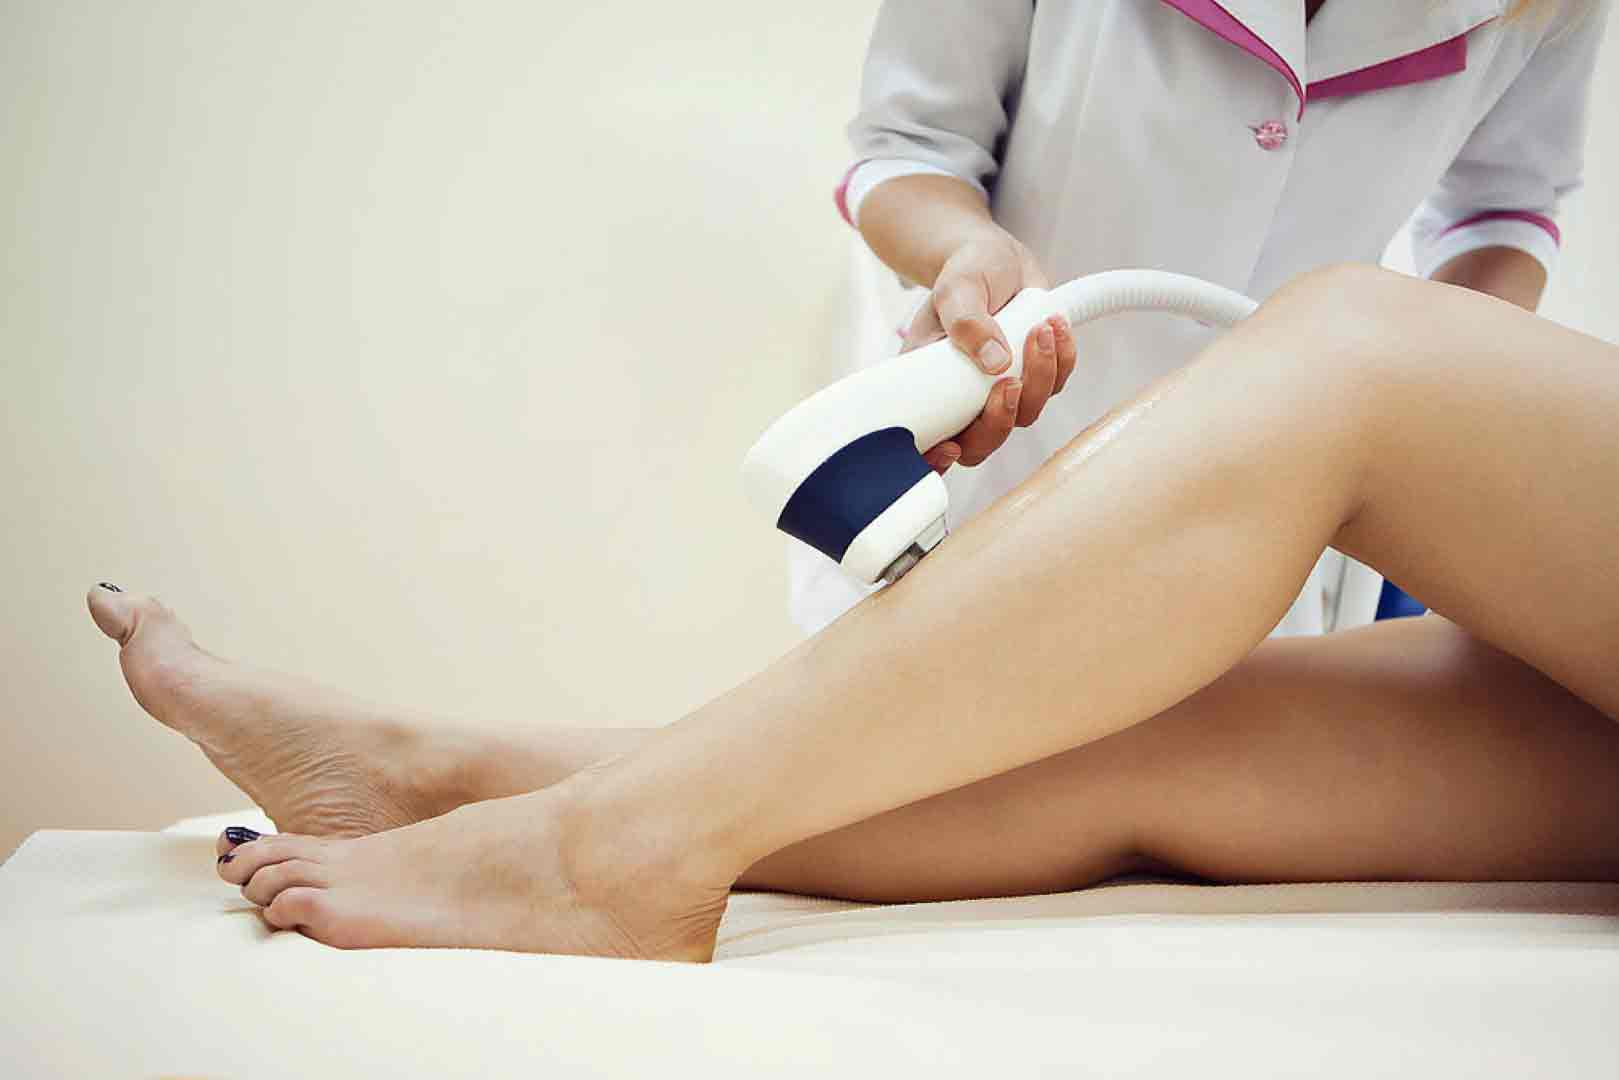 What is the danger of deep bikini laser hair removal?